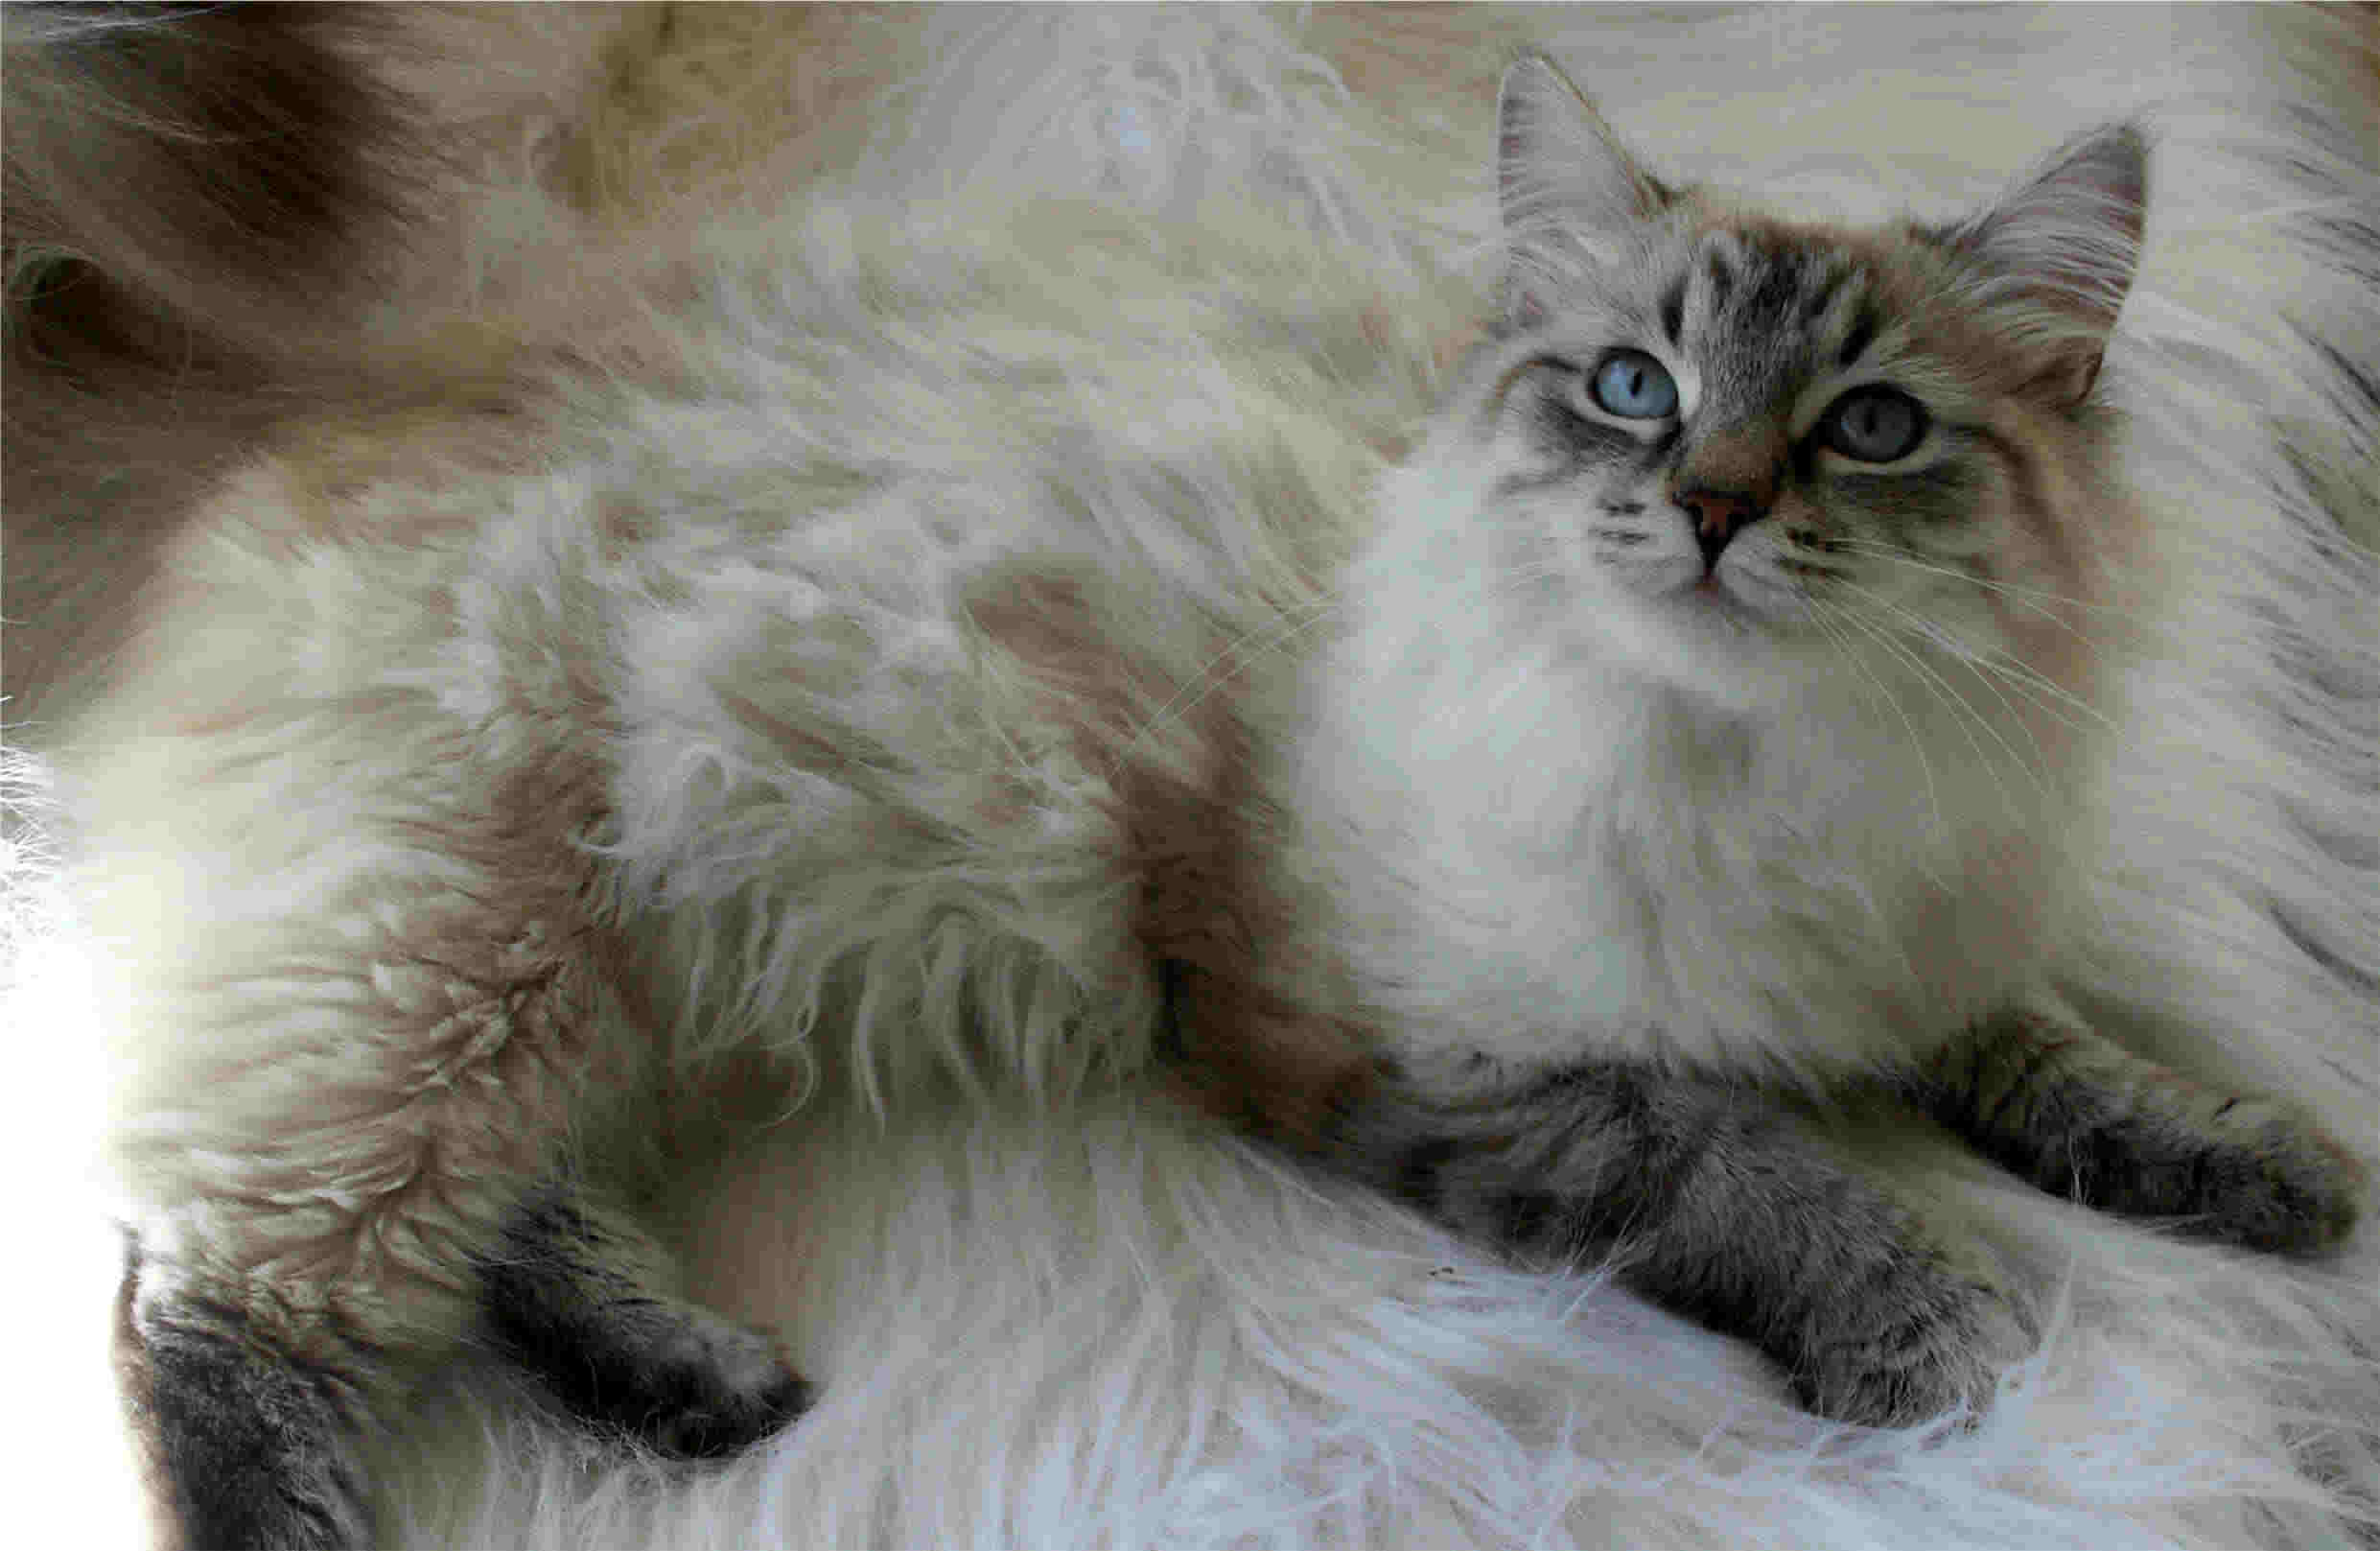 Siberian Cat: Siberian Httpwwwtiptopglobecombig Siberian Cat Jpg Breed